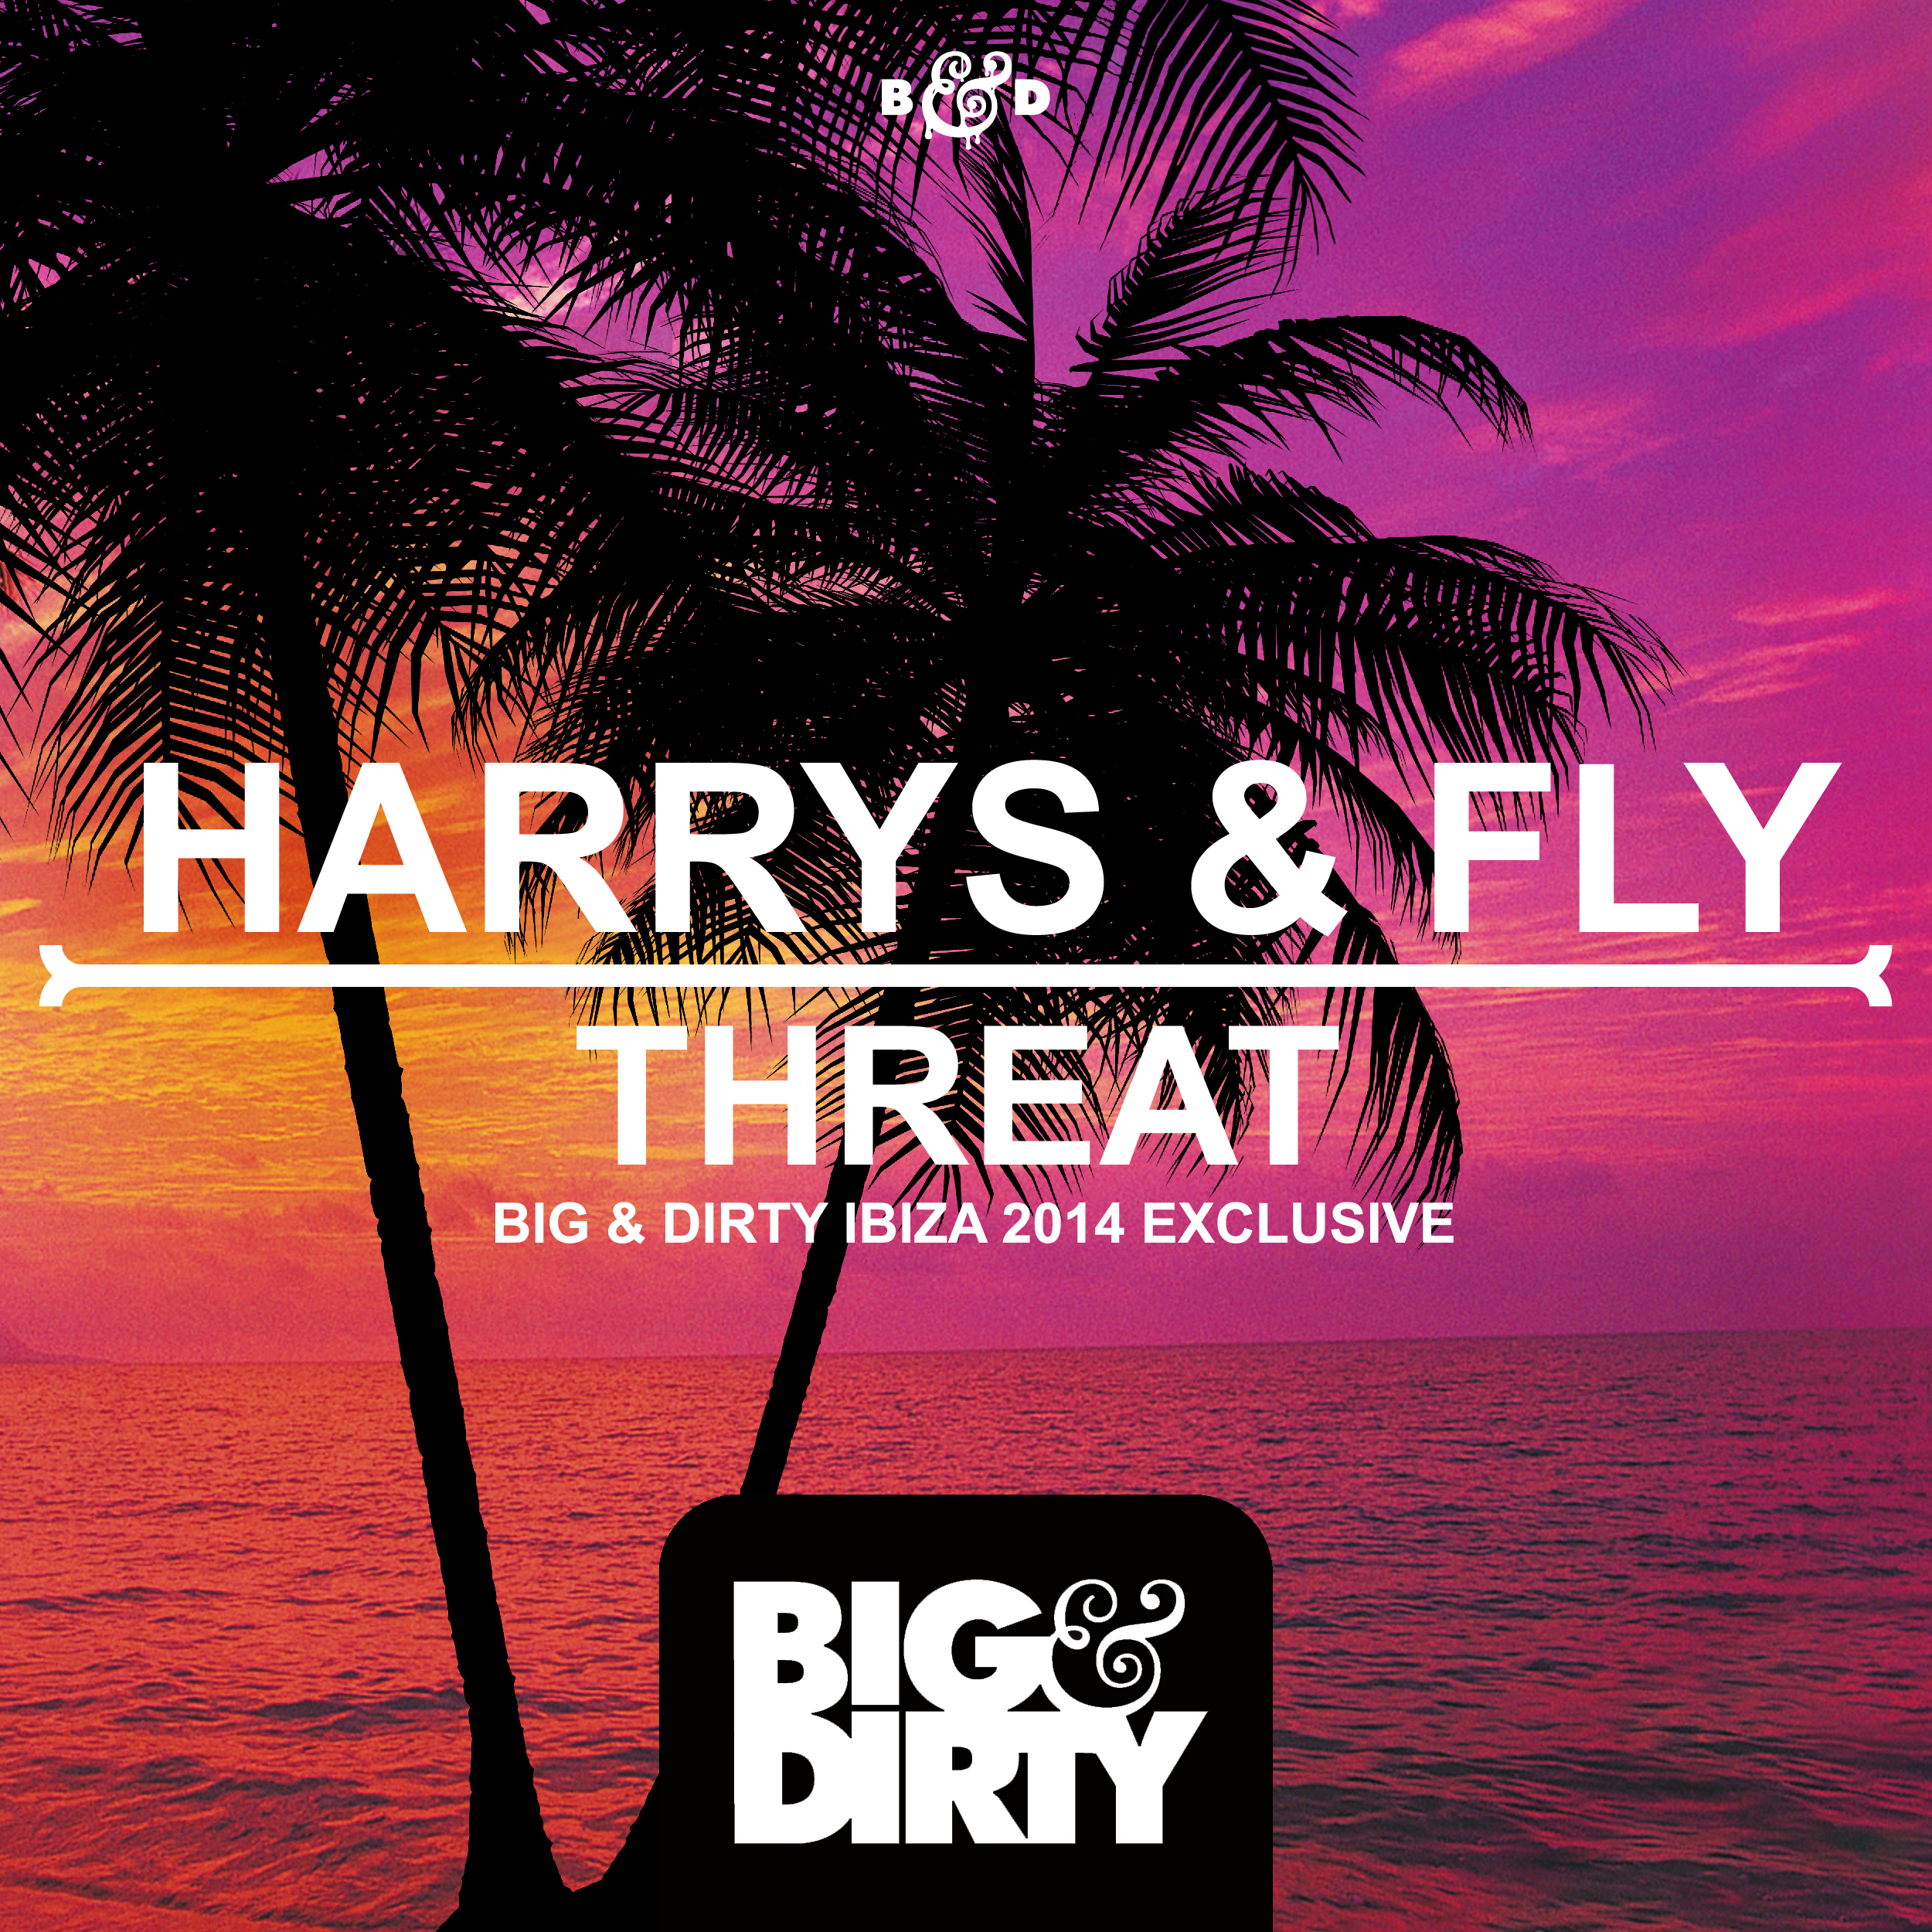 Harrys & Fly - Threat (Original Mix)